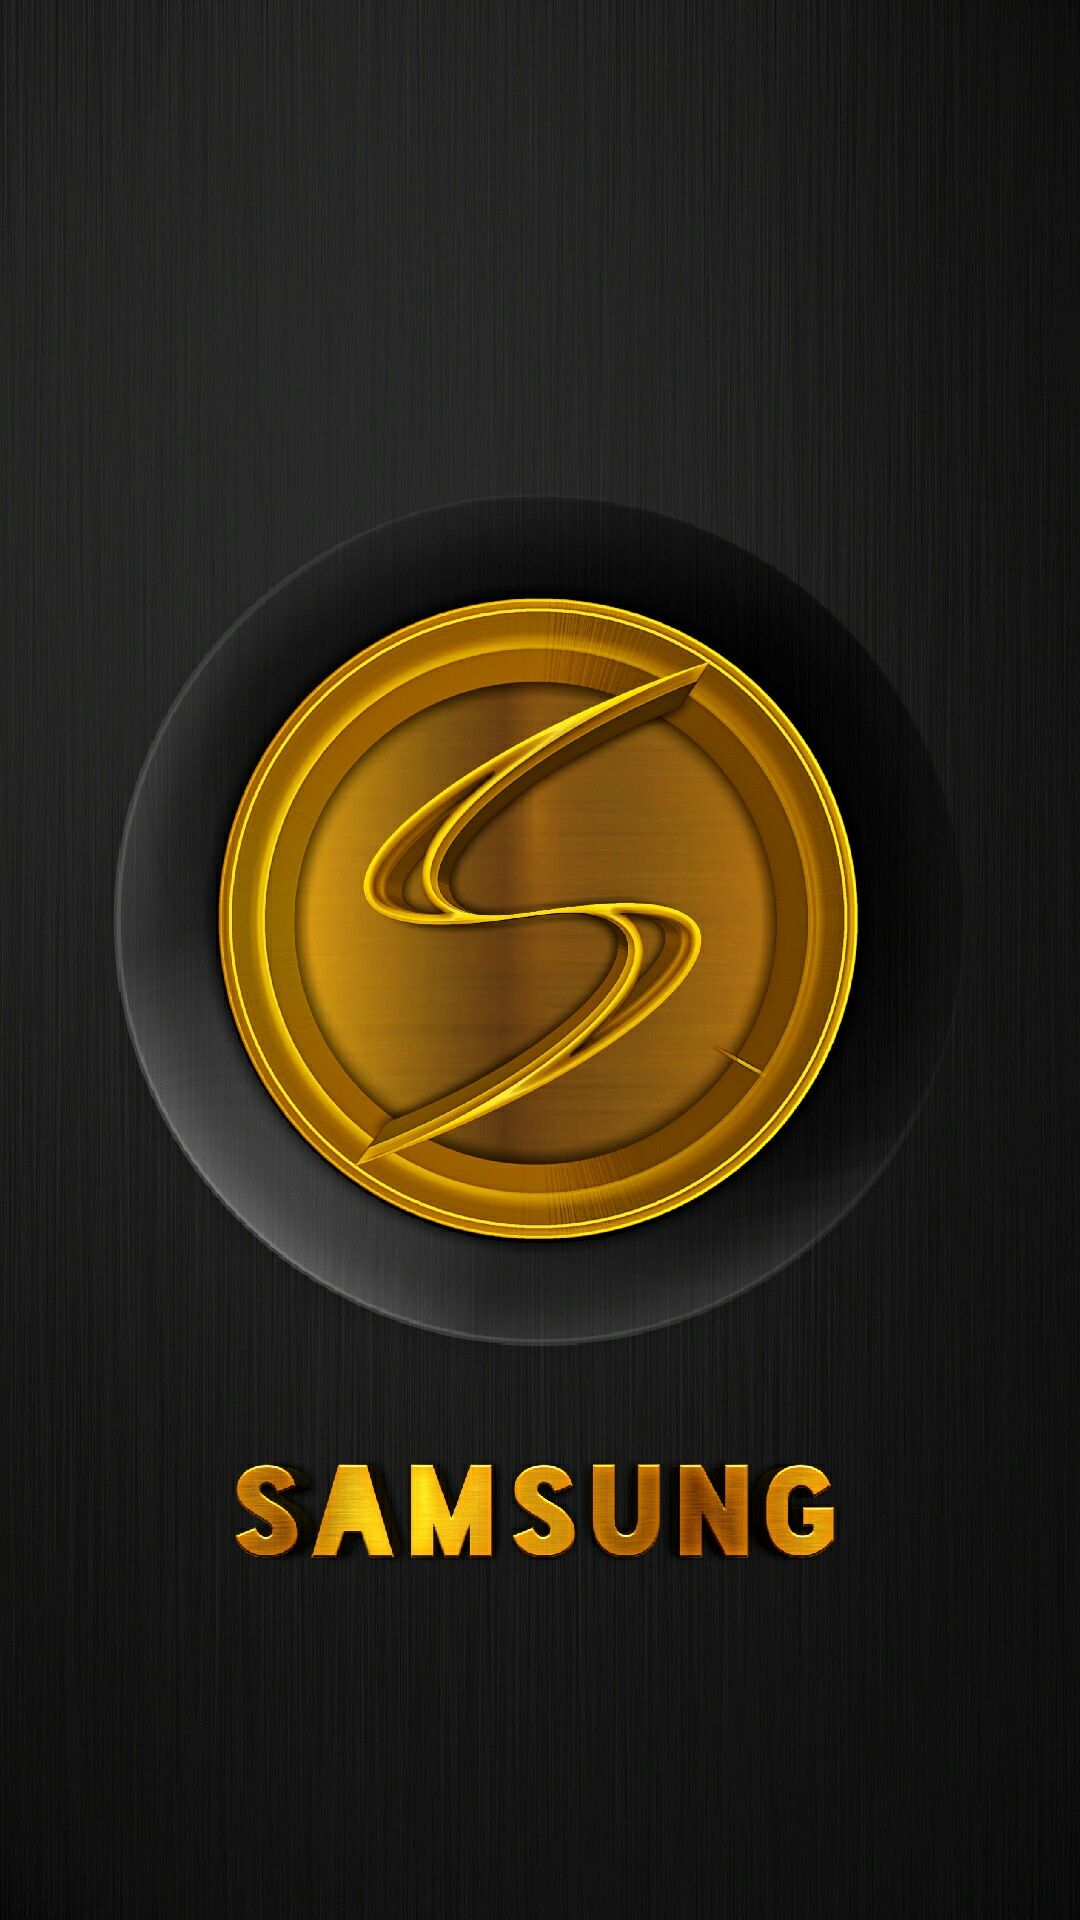 Black And Gold Wallpaper Samsung 1080x1920 Download Hd Wallpaper Wallpapertip